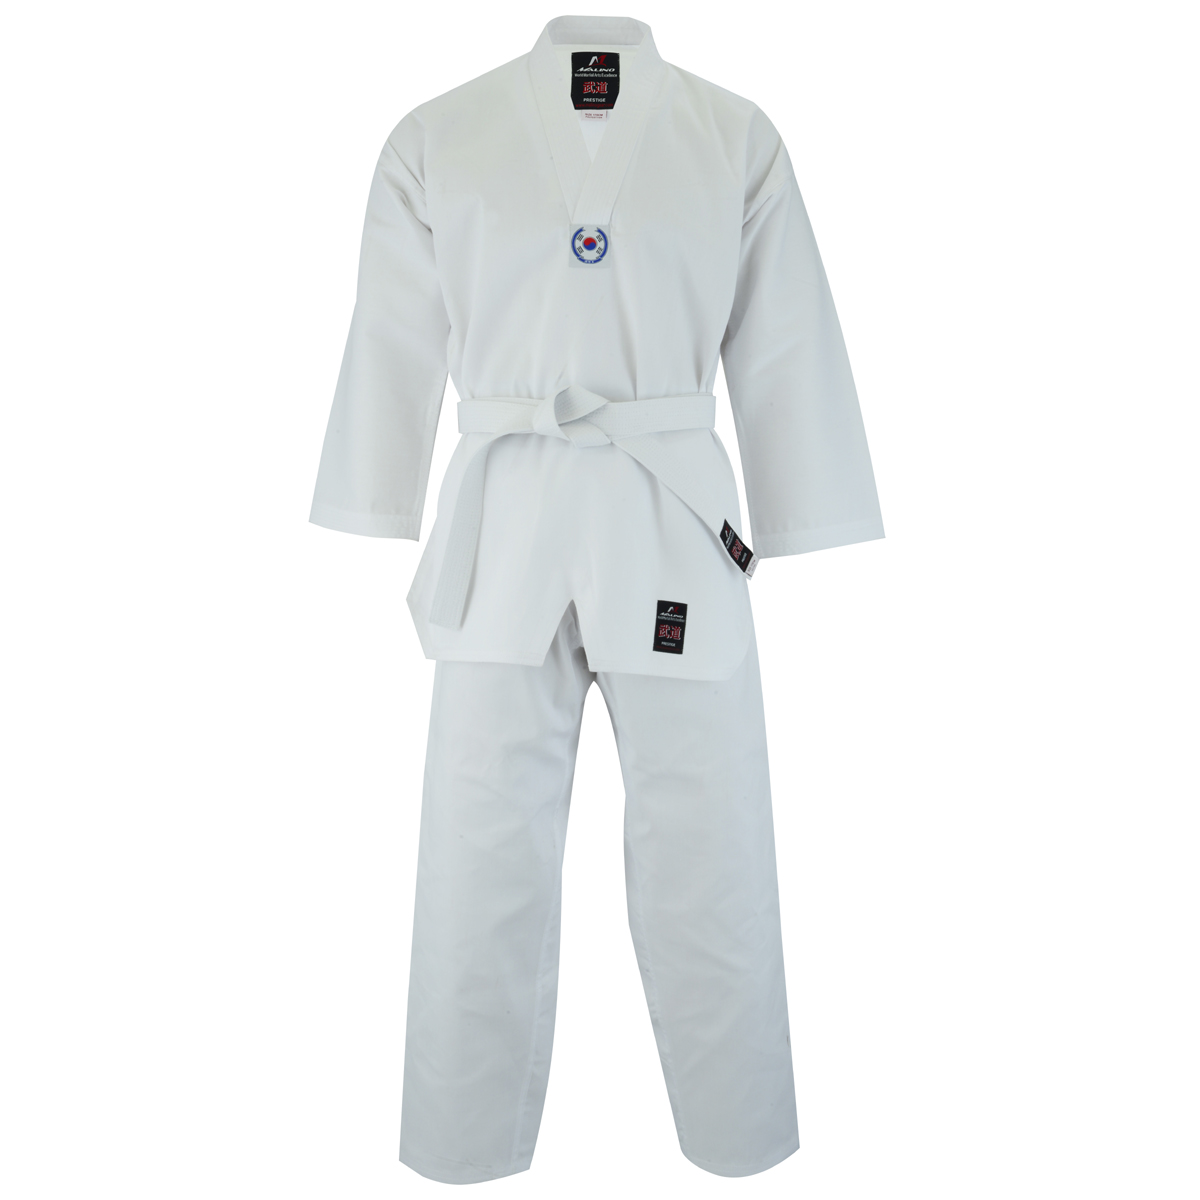 Malino Adult V-Neck Taekwondo Suit White- 7oz